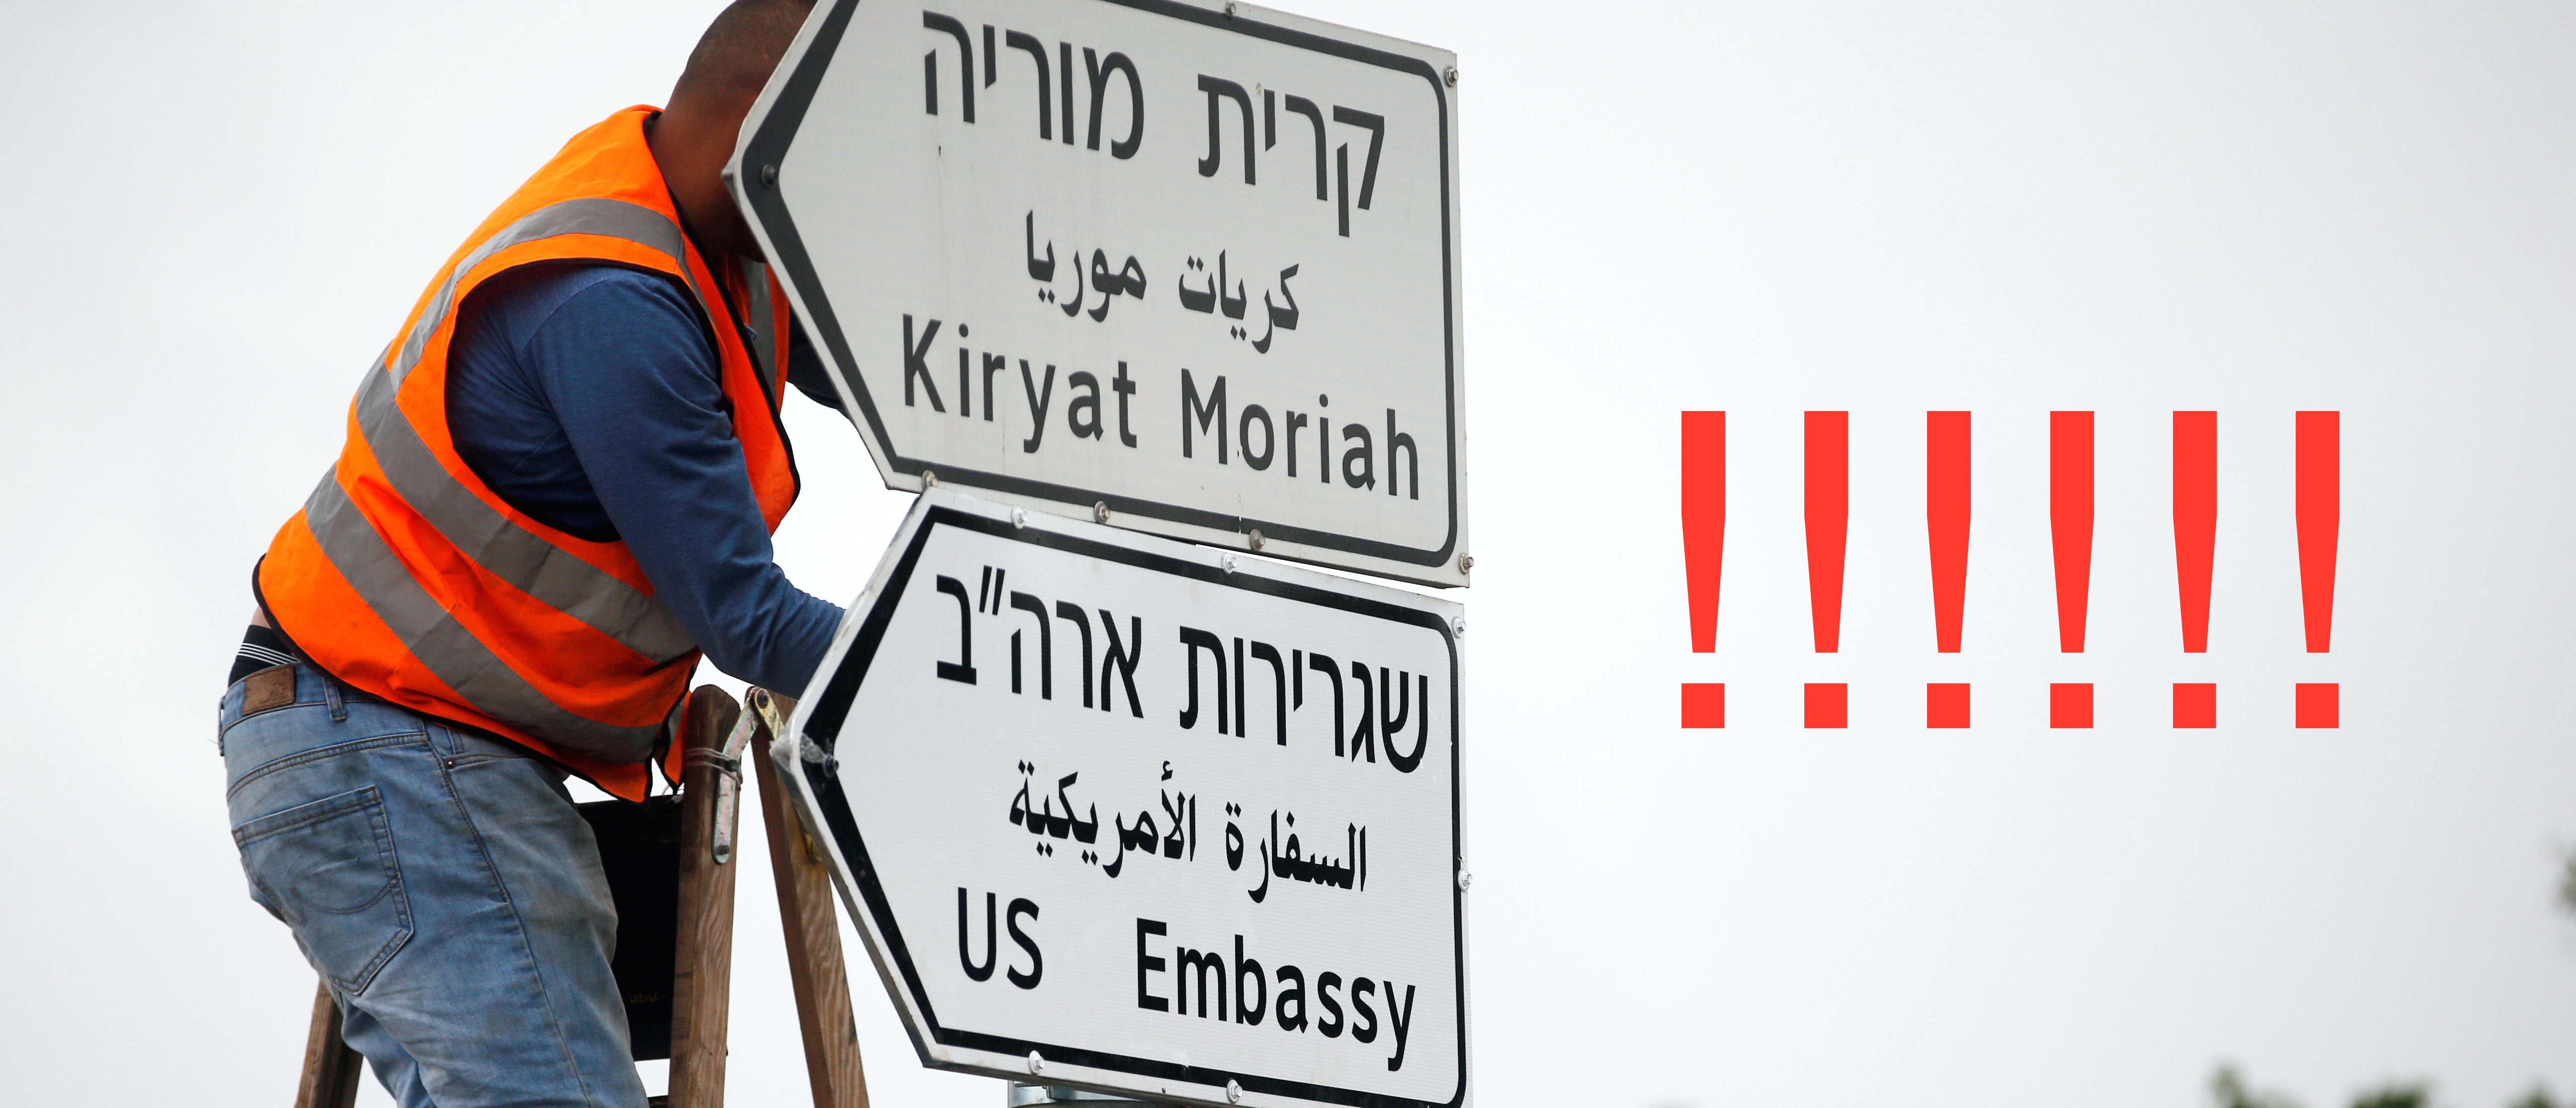 A worker hangs a road sign directing to the U.S. embassy, in the area of the U.S. consulate in Jerusalem, May 7, 2018. REUTERS/Ronen Zvulun -